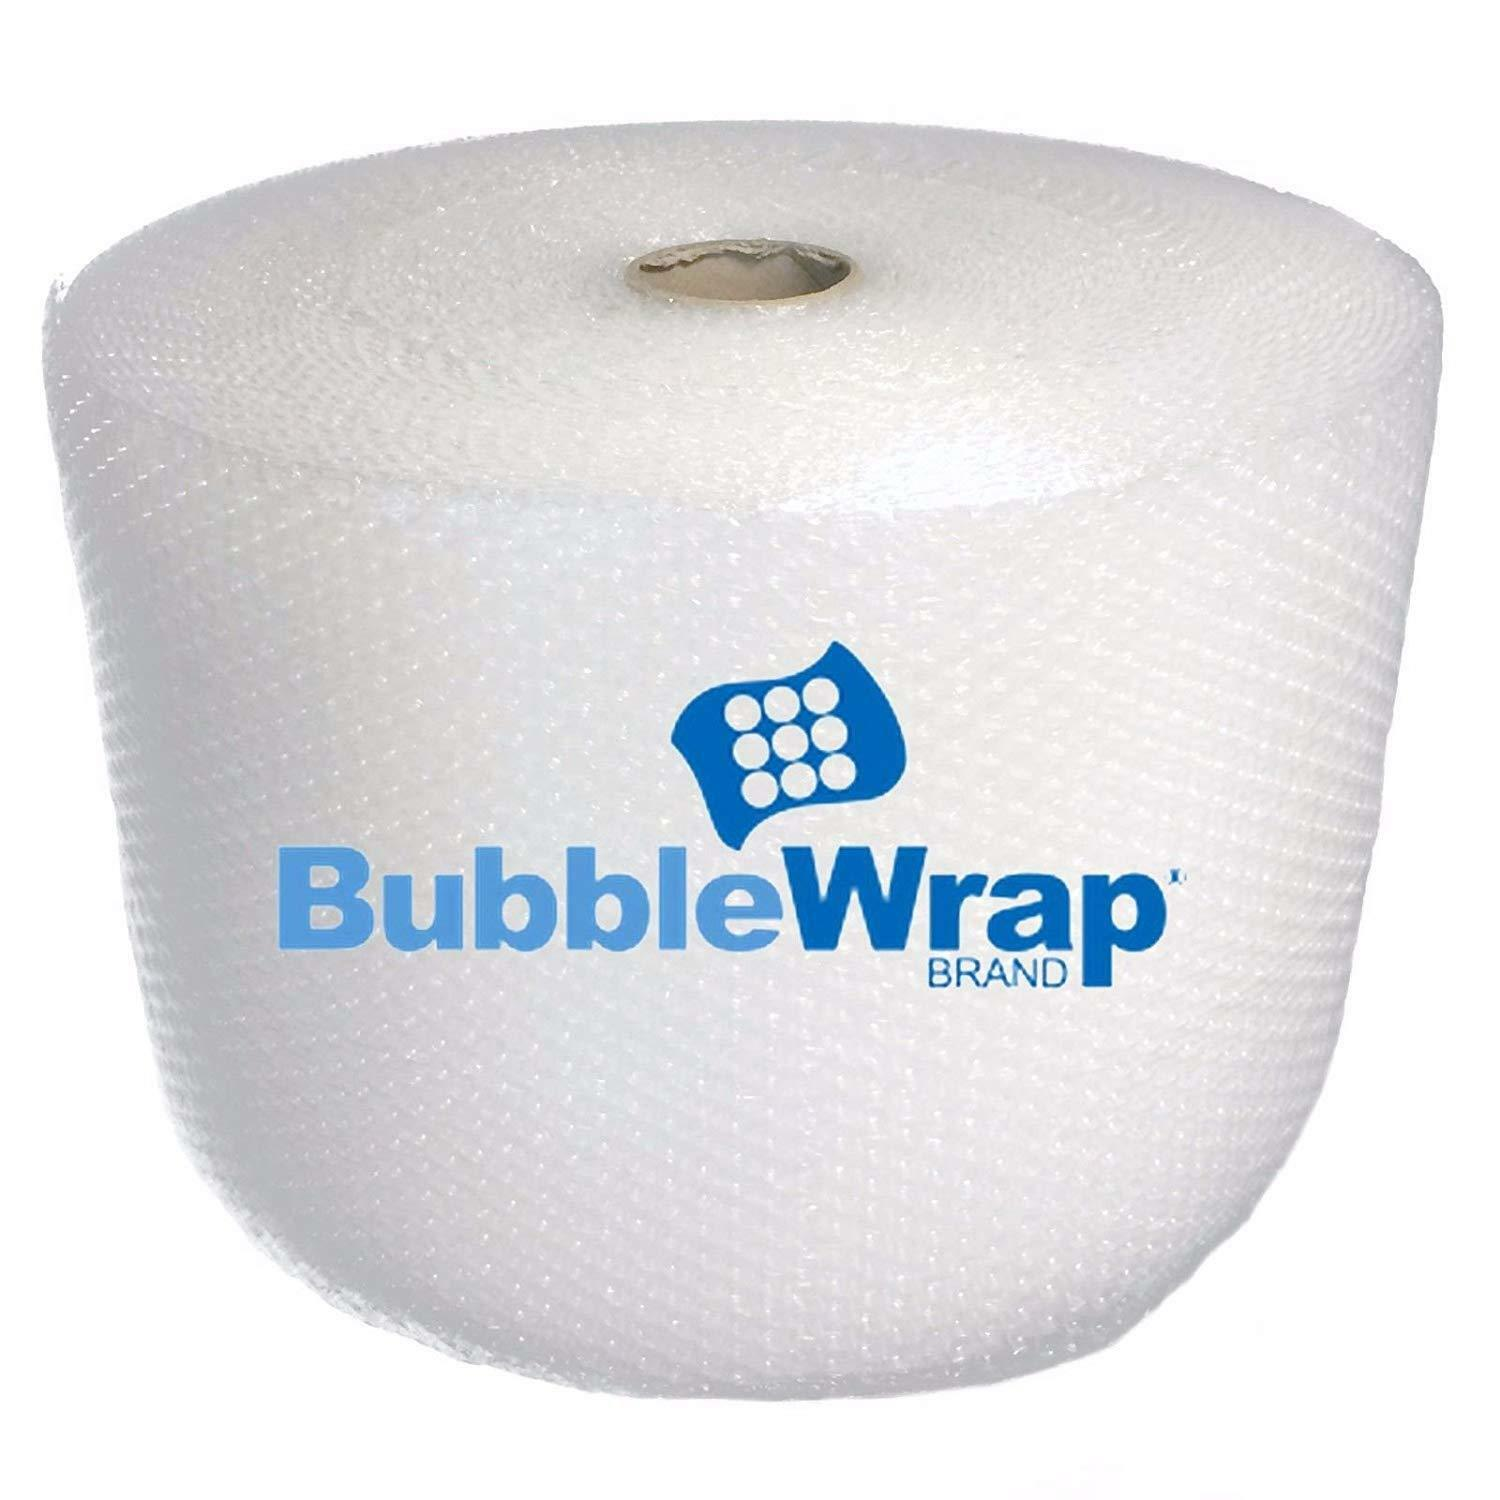 "BUBBLE WRAP® 3/16""- 700 ft x 12"" perforated every 12"" cardboard Core included"